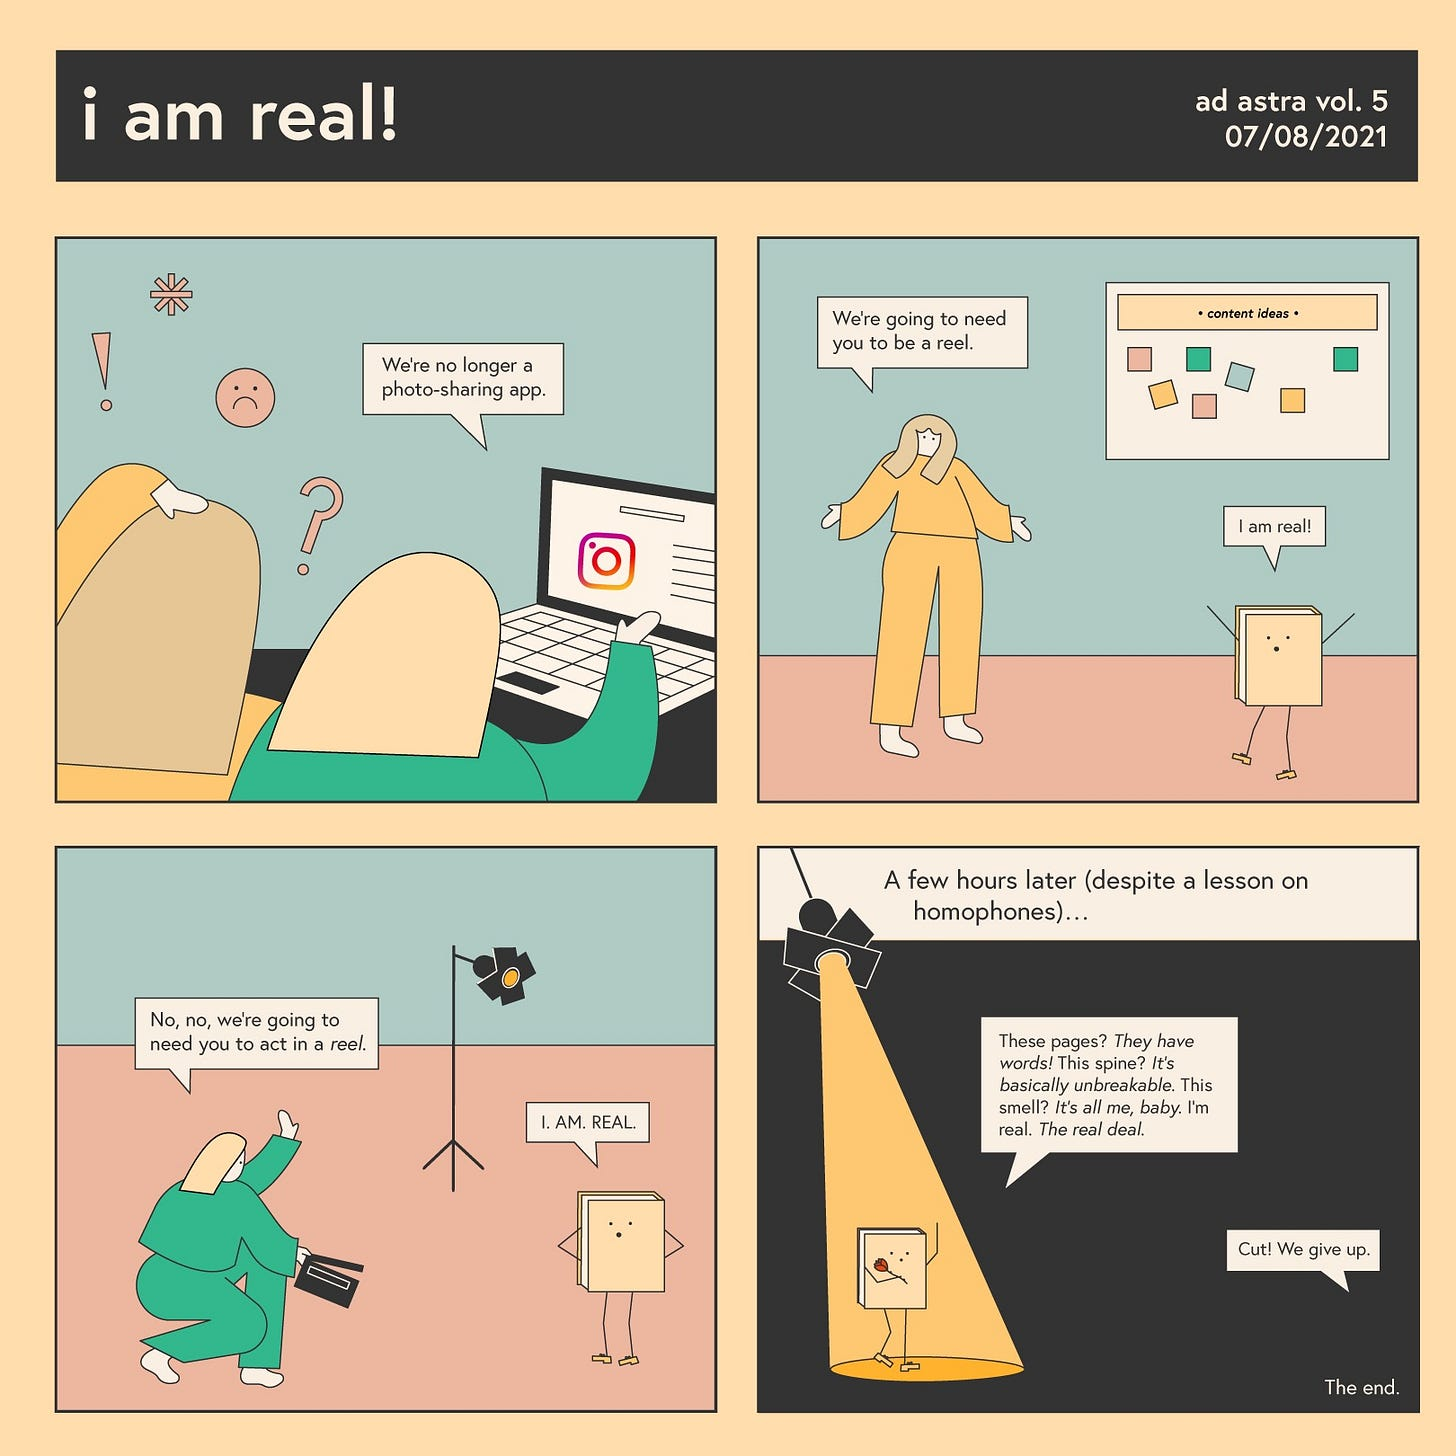 """A four panel comic entitled """"i am real!"""" In the first panel, two individuals read Instagram's recent announcement that they are prioritizing reels. They are confused and angry. In the second pane, one individual tells a book they need them to be a reel, to which the book responds, """"i am real!"""" In the third pane, the other individual crouches with a clapboard, trying again. To which the book responds """"I. AM. REAL."""" The final scene depicts the book in a spotlight, giving a soliloquy as to how real they are. Coming from off screen is the text: """"Cut! We give up."""""""